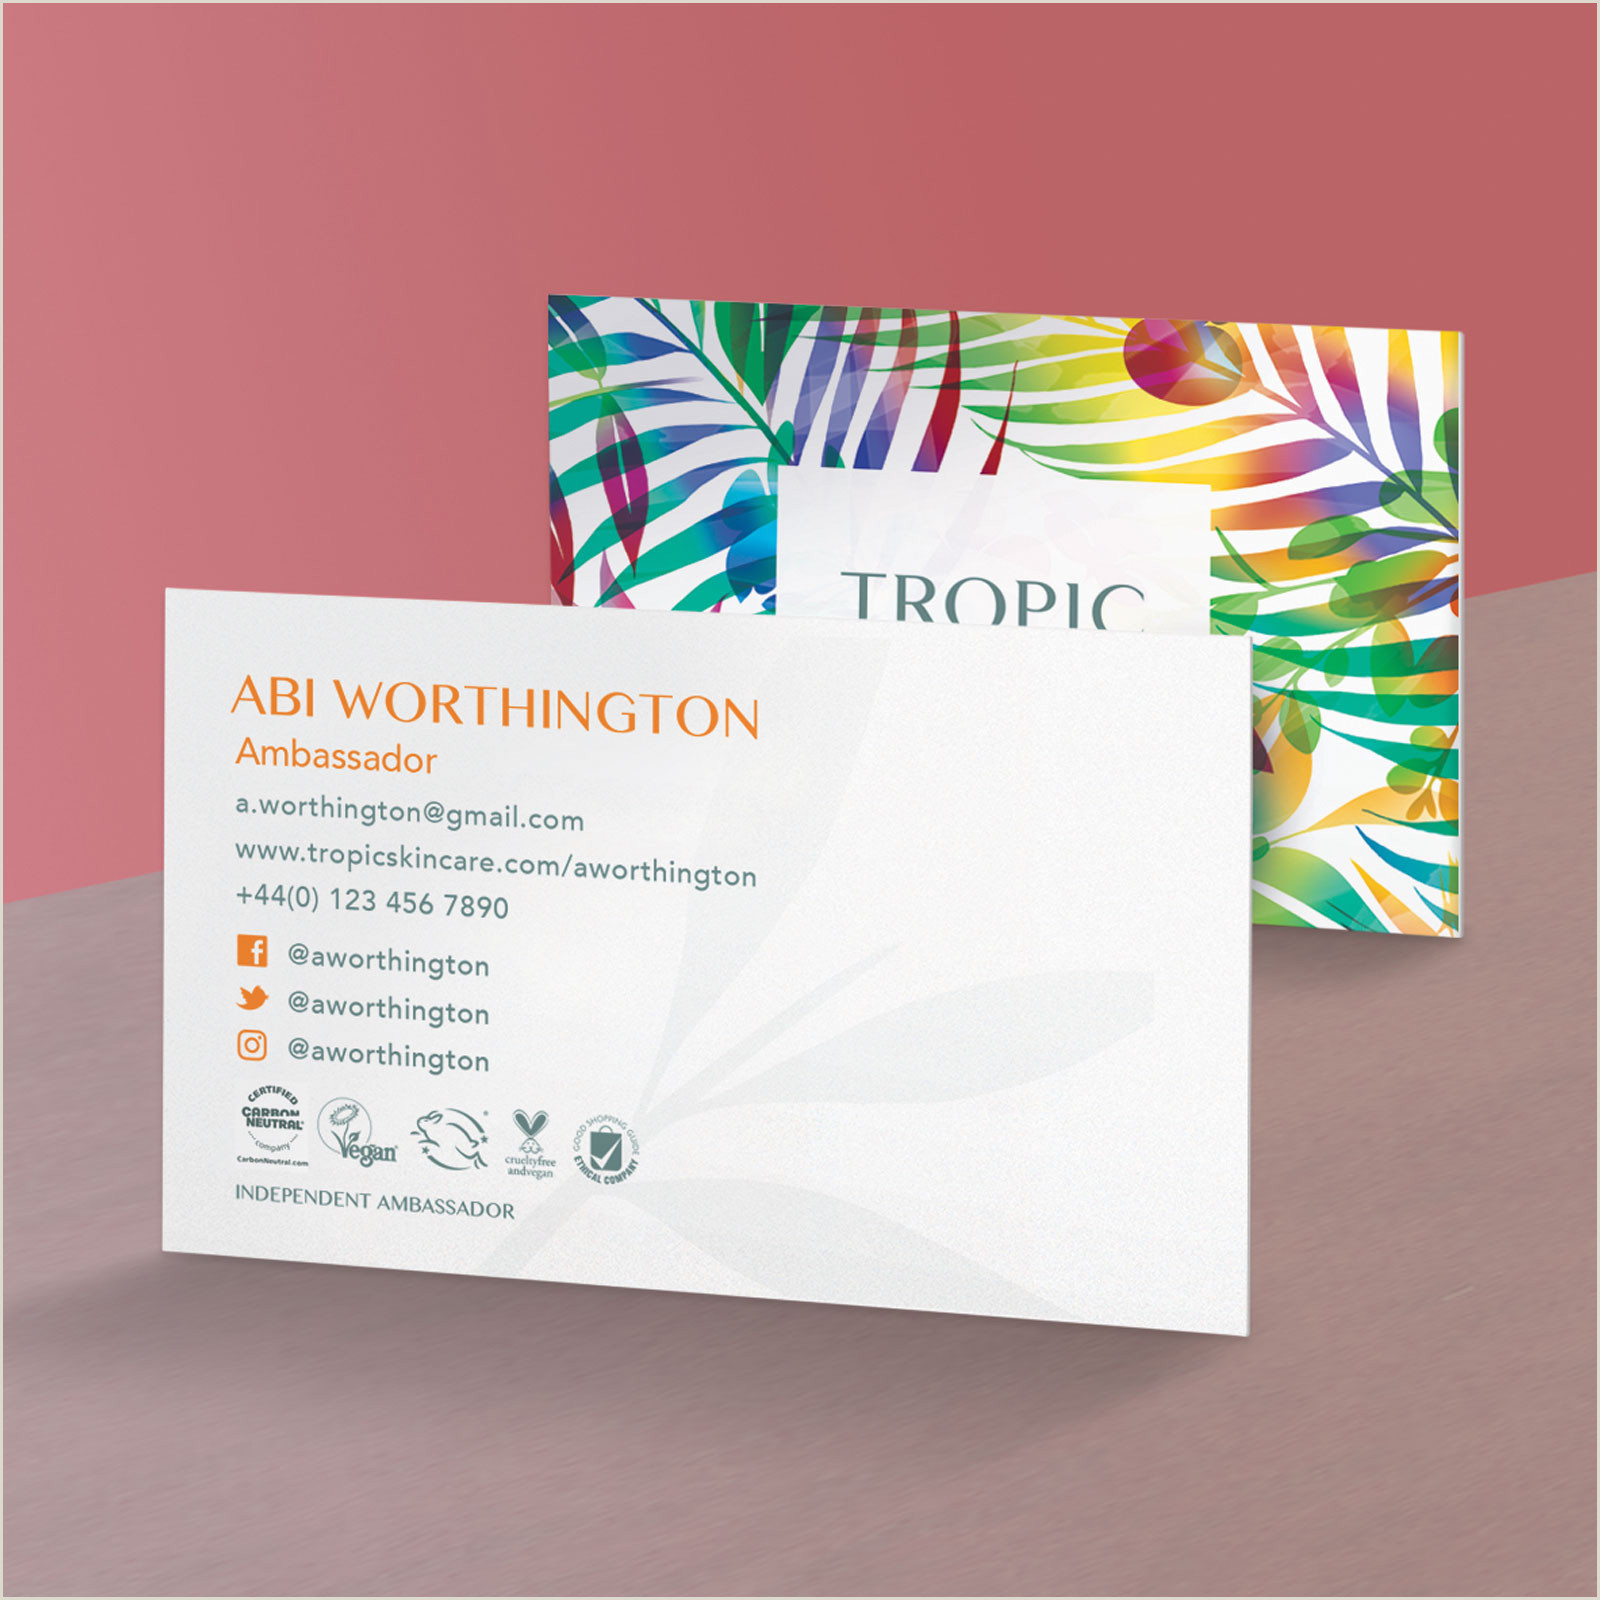 Background For Business Card Upload A Design Laminated Business Cards